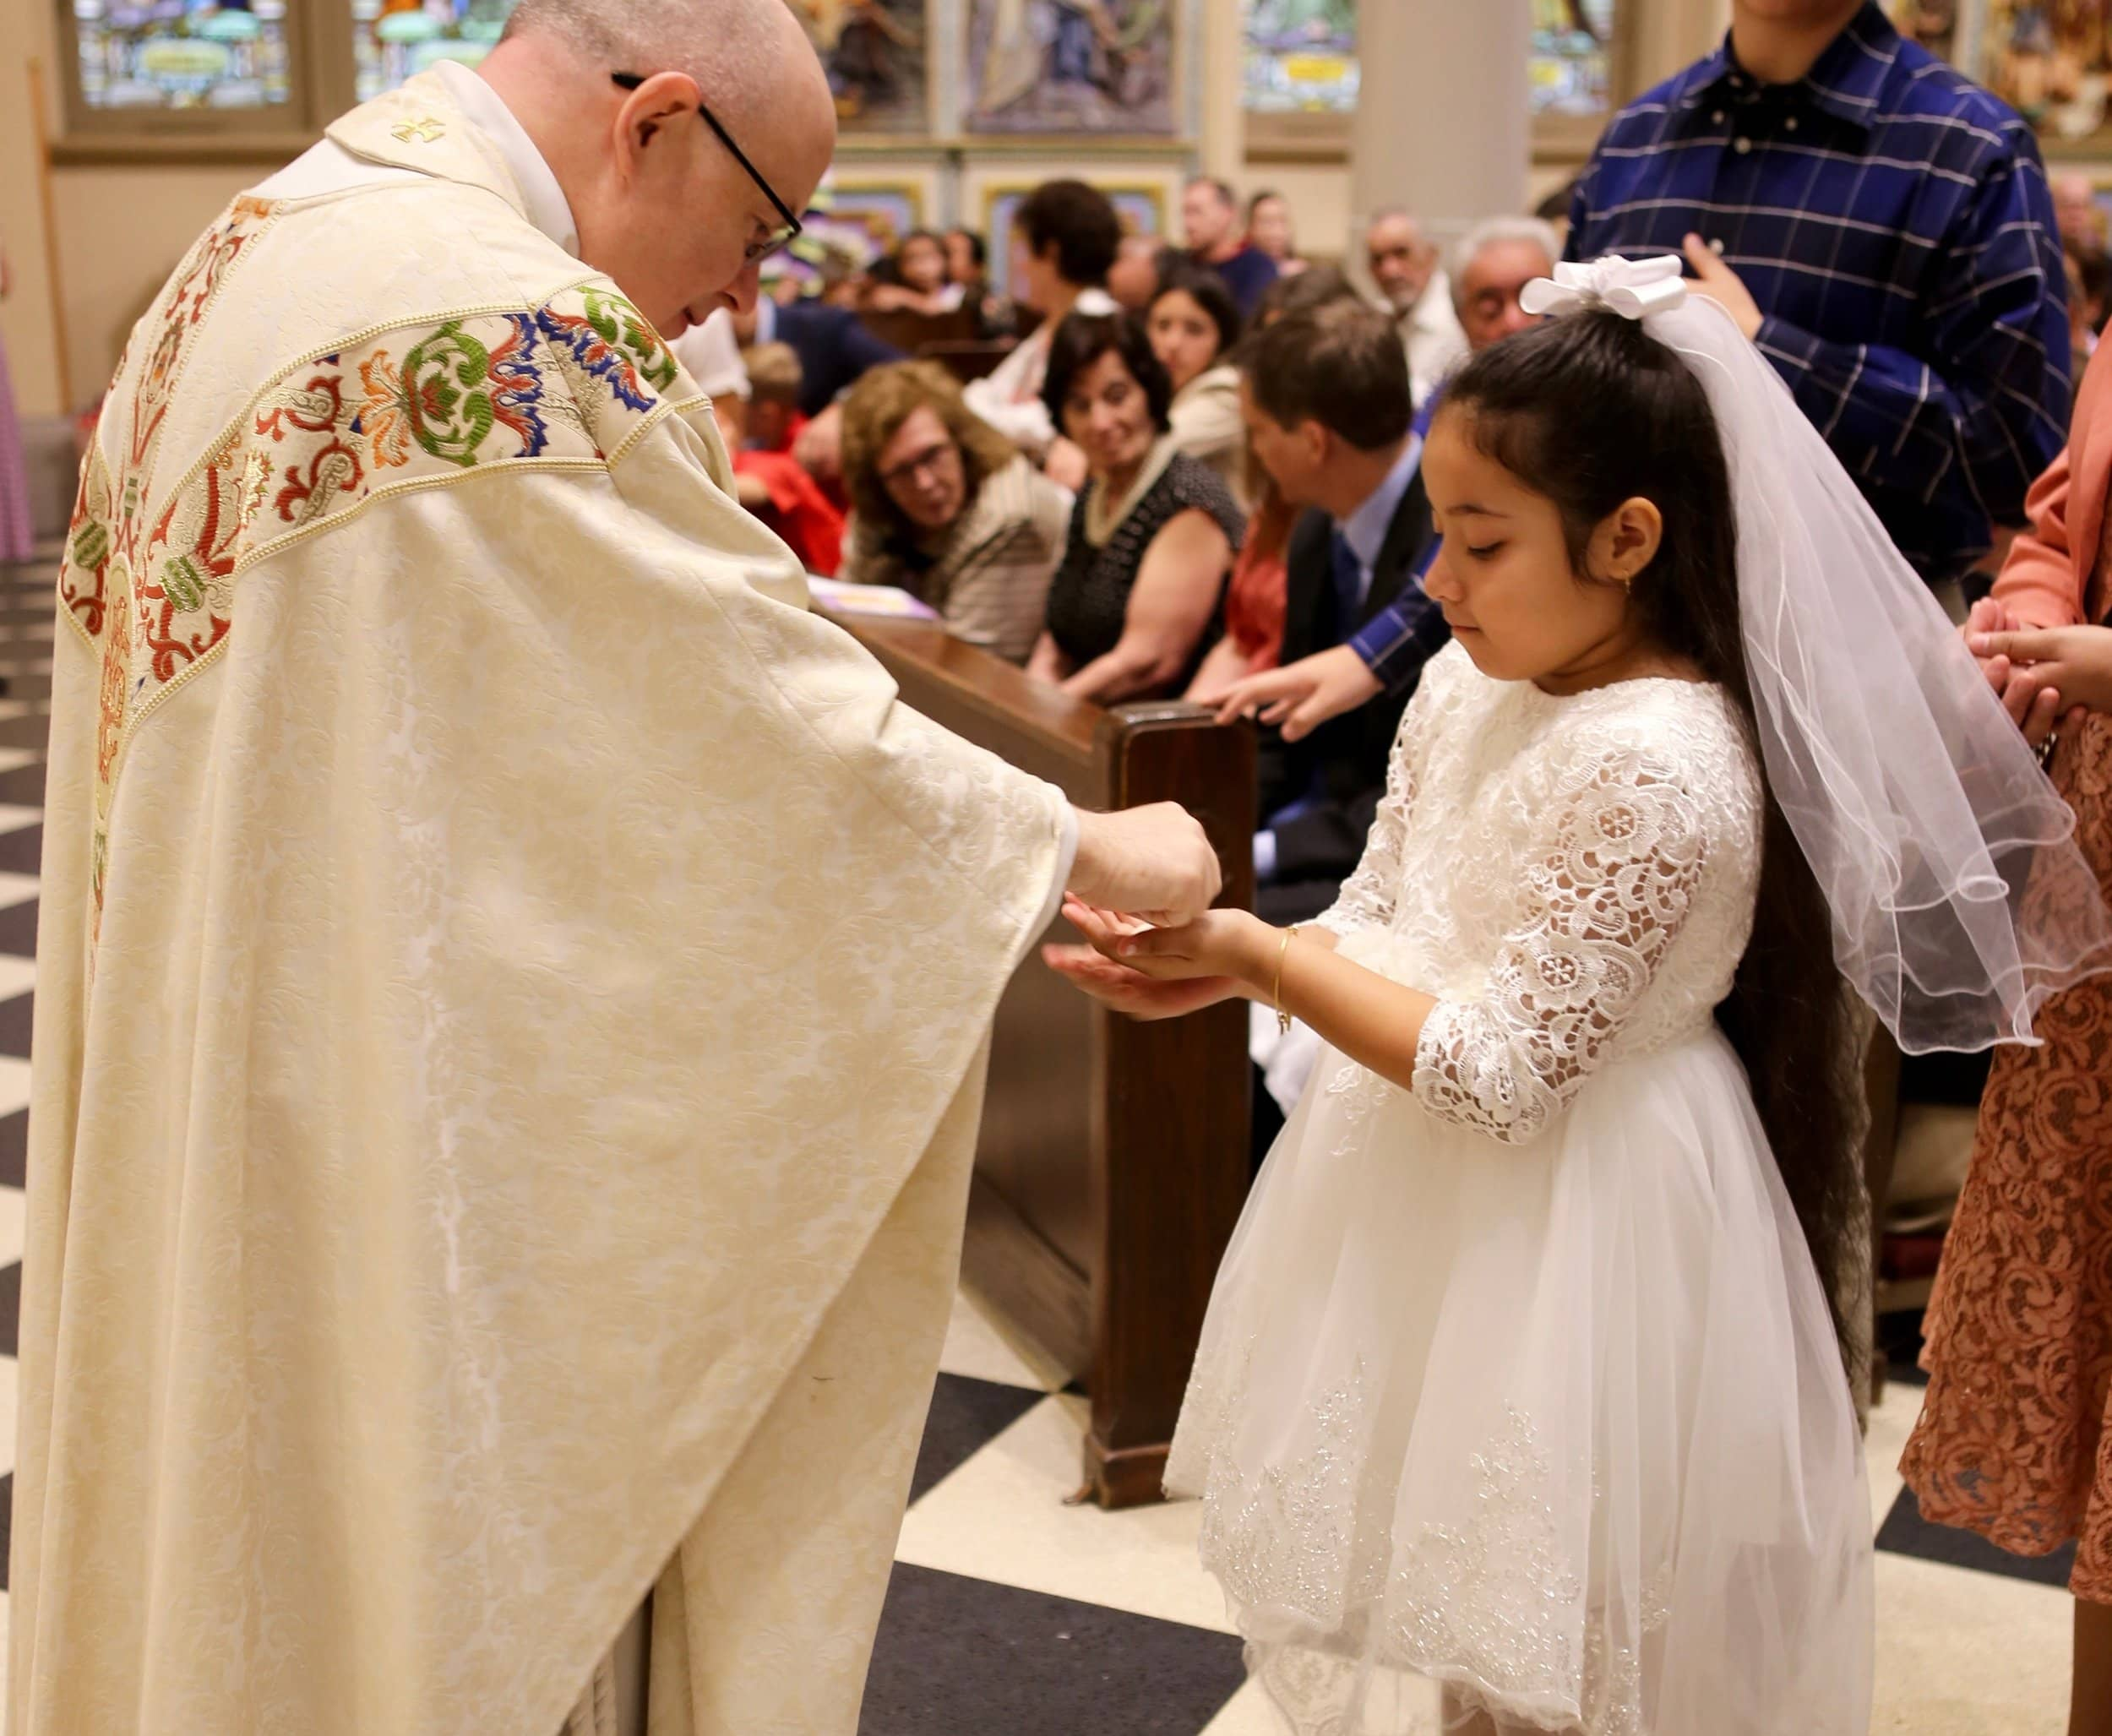 first-communion-youth-kids-st-francis-de-sales-church-new-york-city.jpg